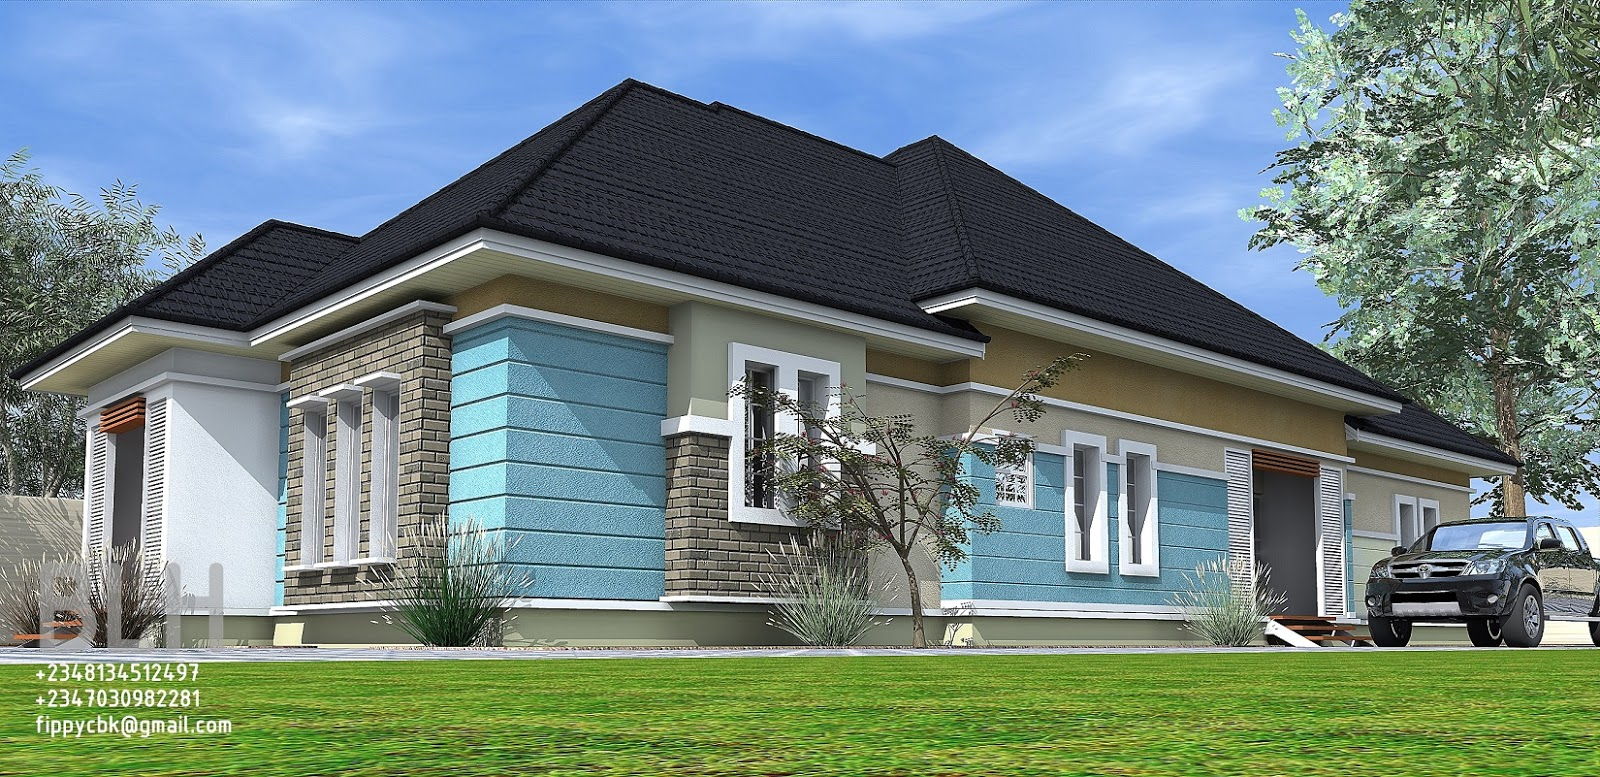 Architectural designs by blacklakehouse 4 bedroom bungalow for 3 bedroom bungalow house designs